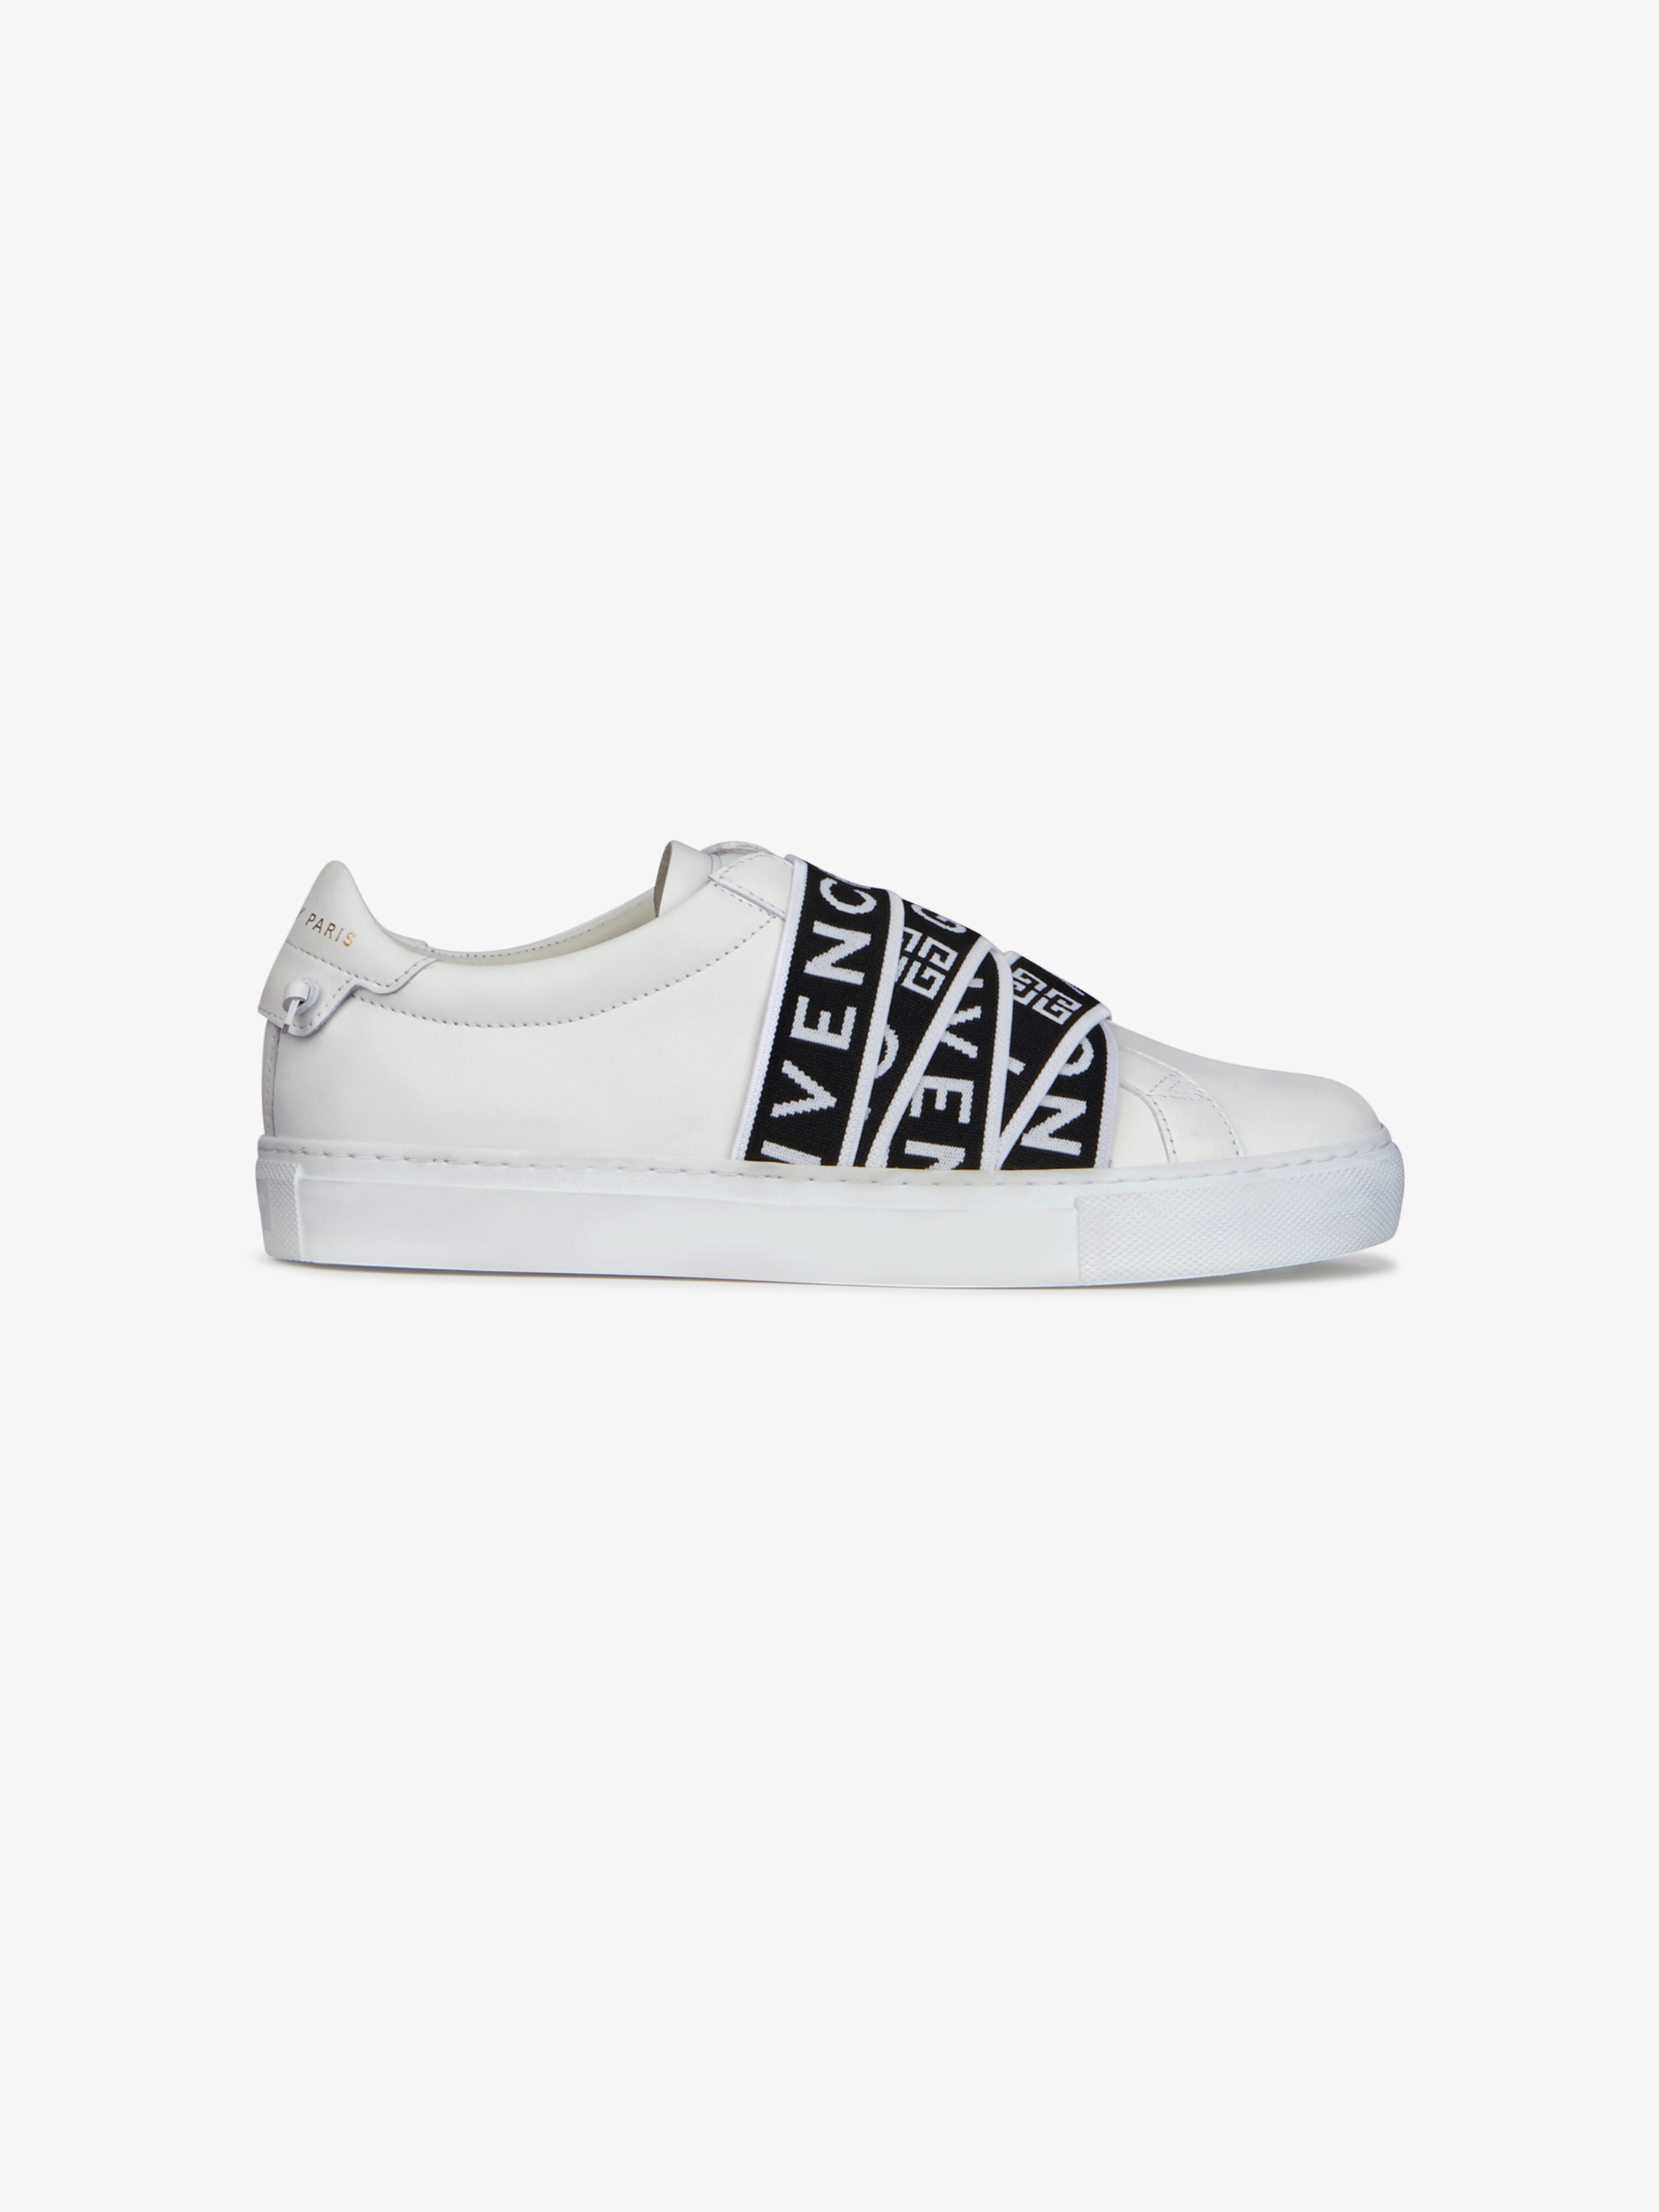 GIVENCHY 4G webbing sneakers in leather